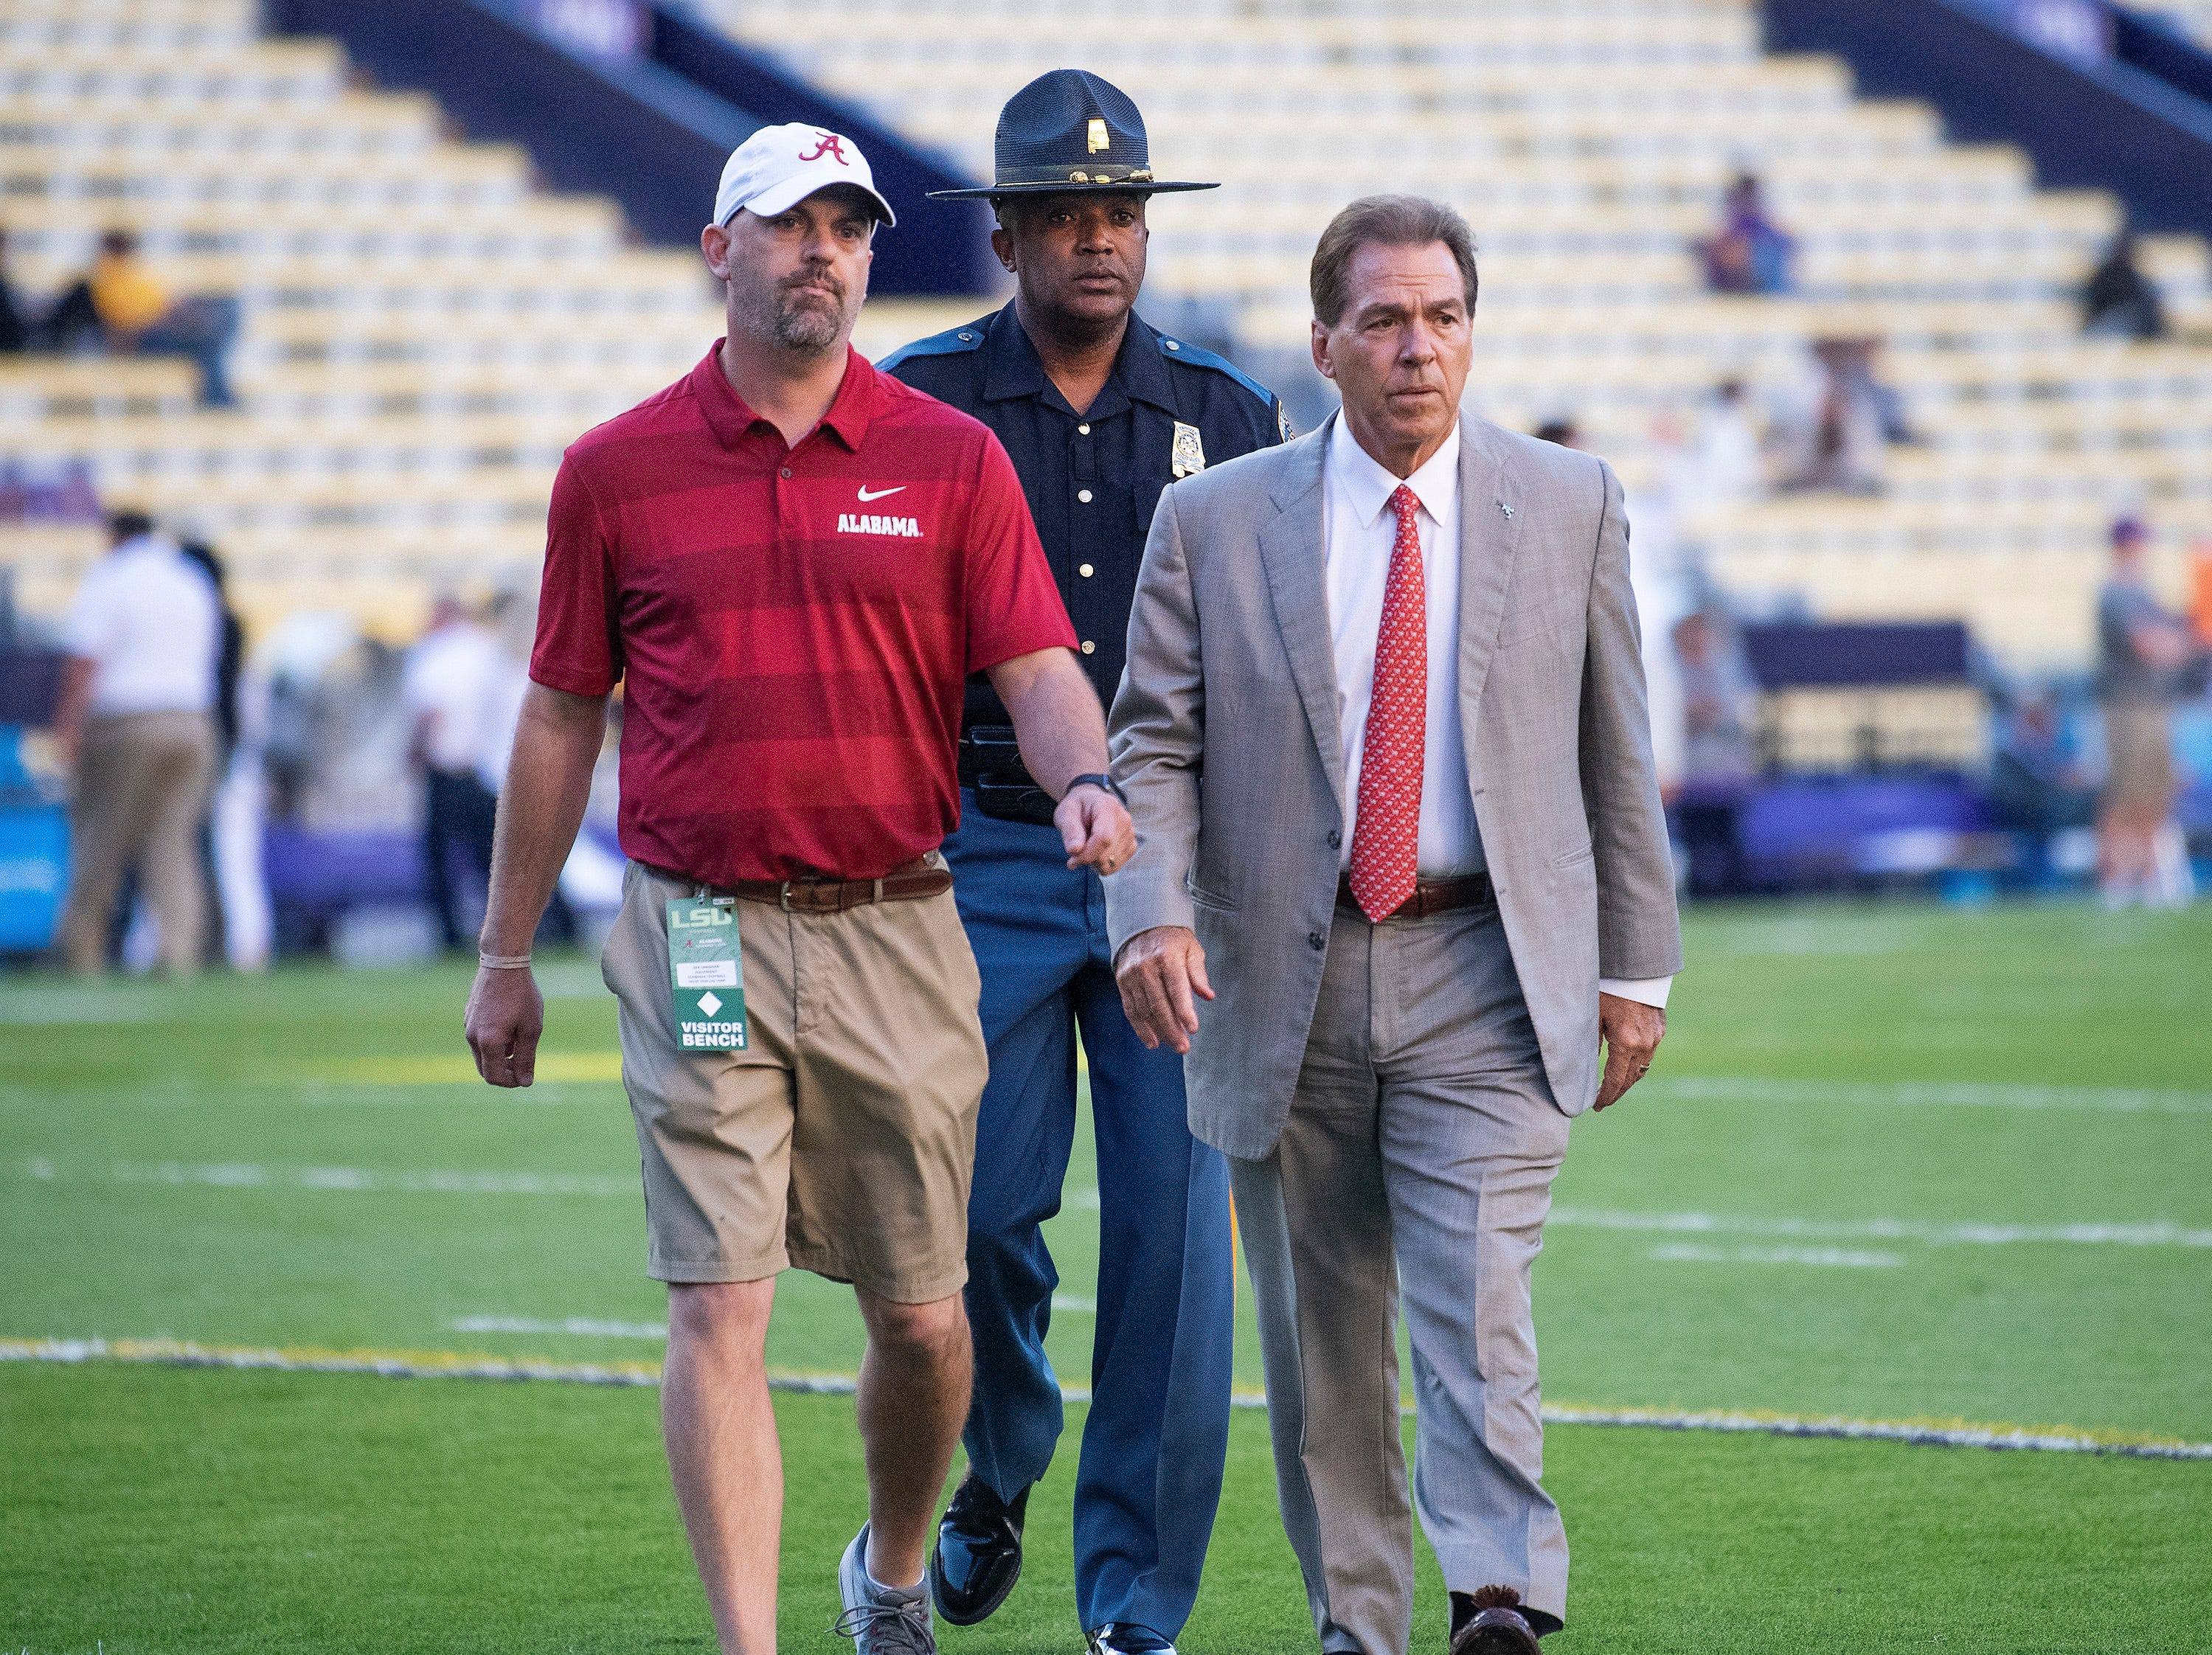 Alabama head coach Nick Saban walks the field before the Alabama vs. Louisiana State football game at Tiger Stadium in Baton Rouge, La., on Saturday November 3, 2018.